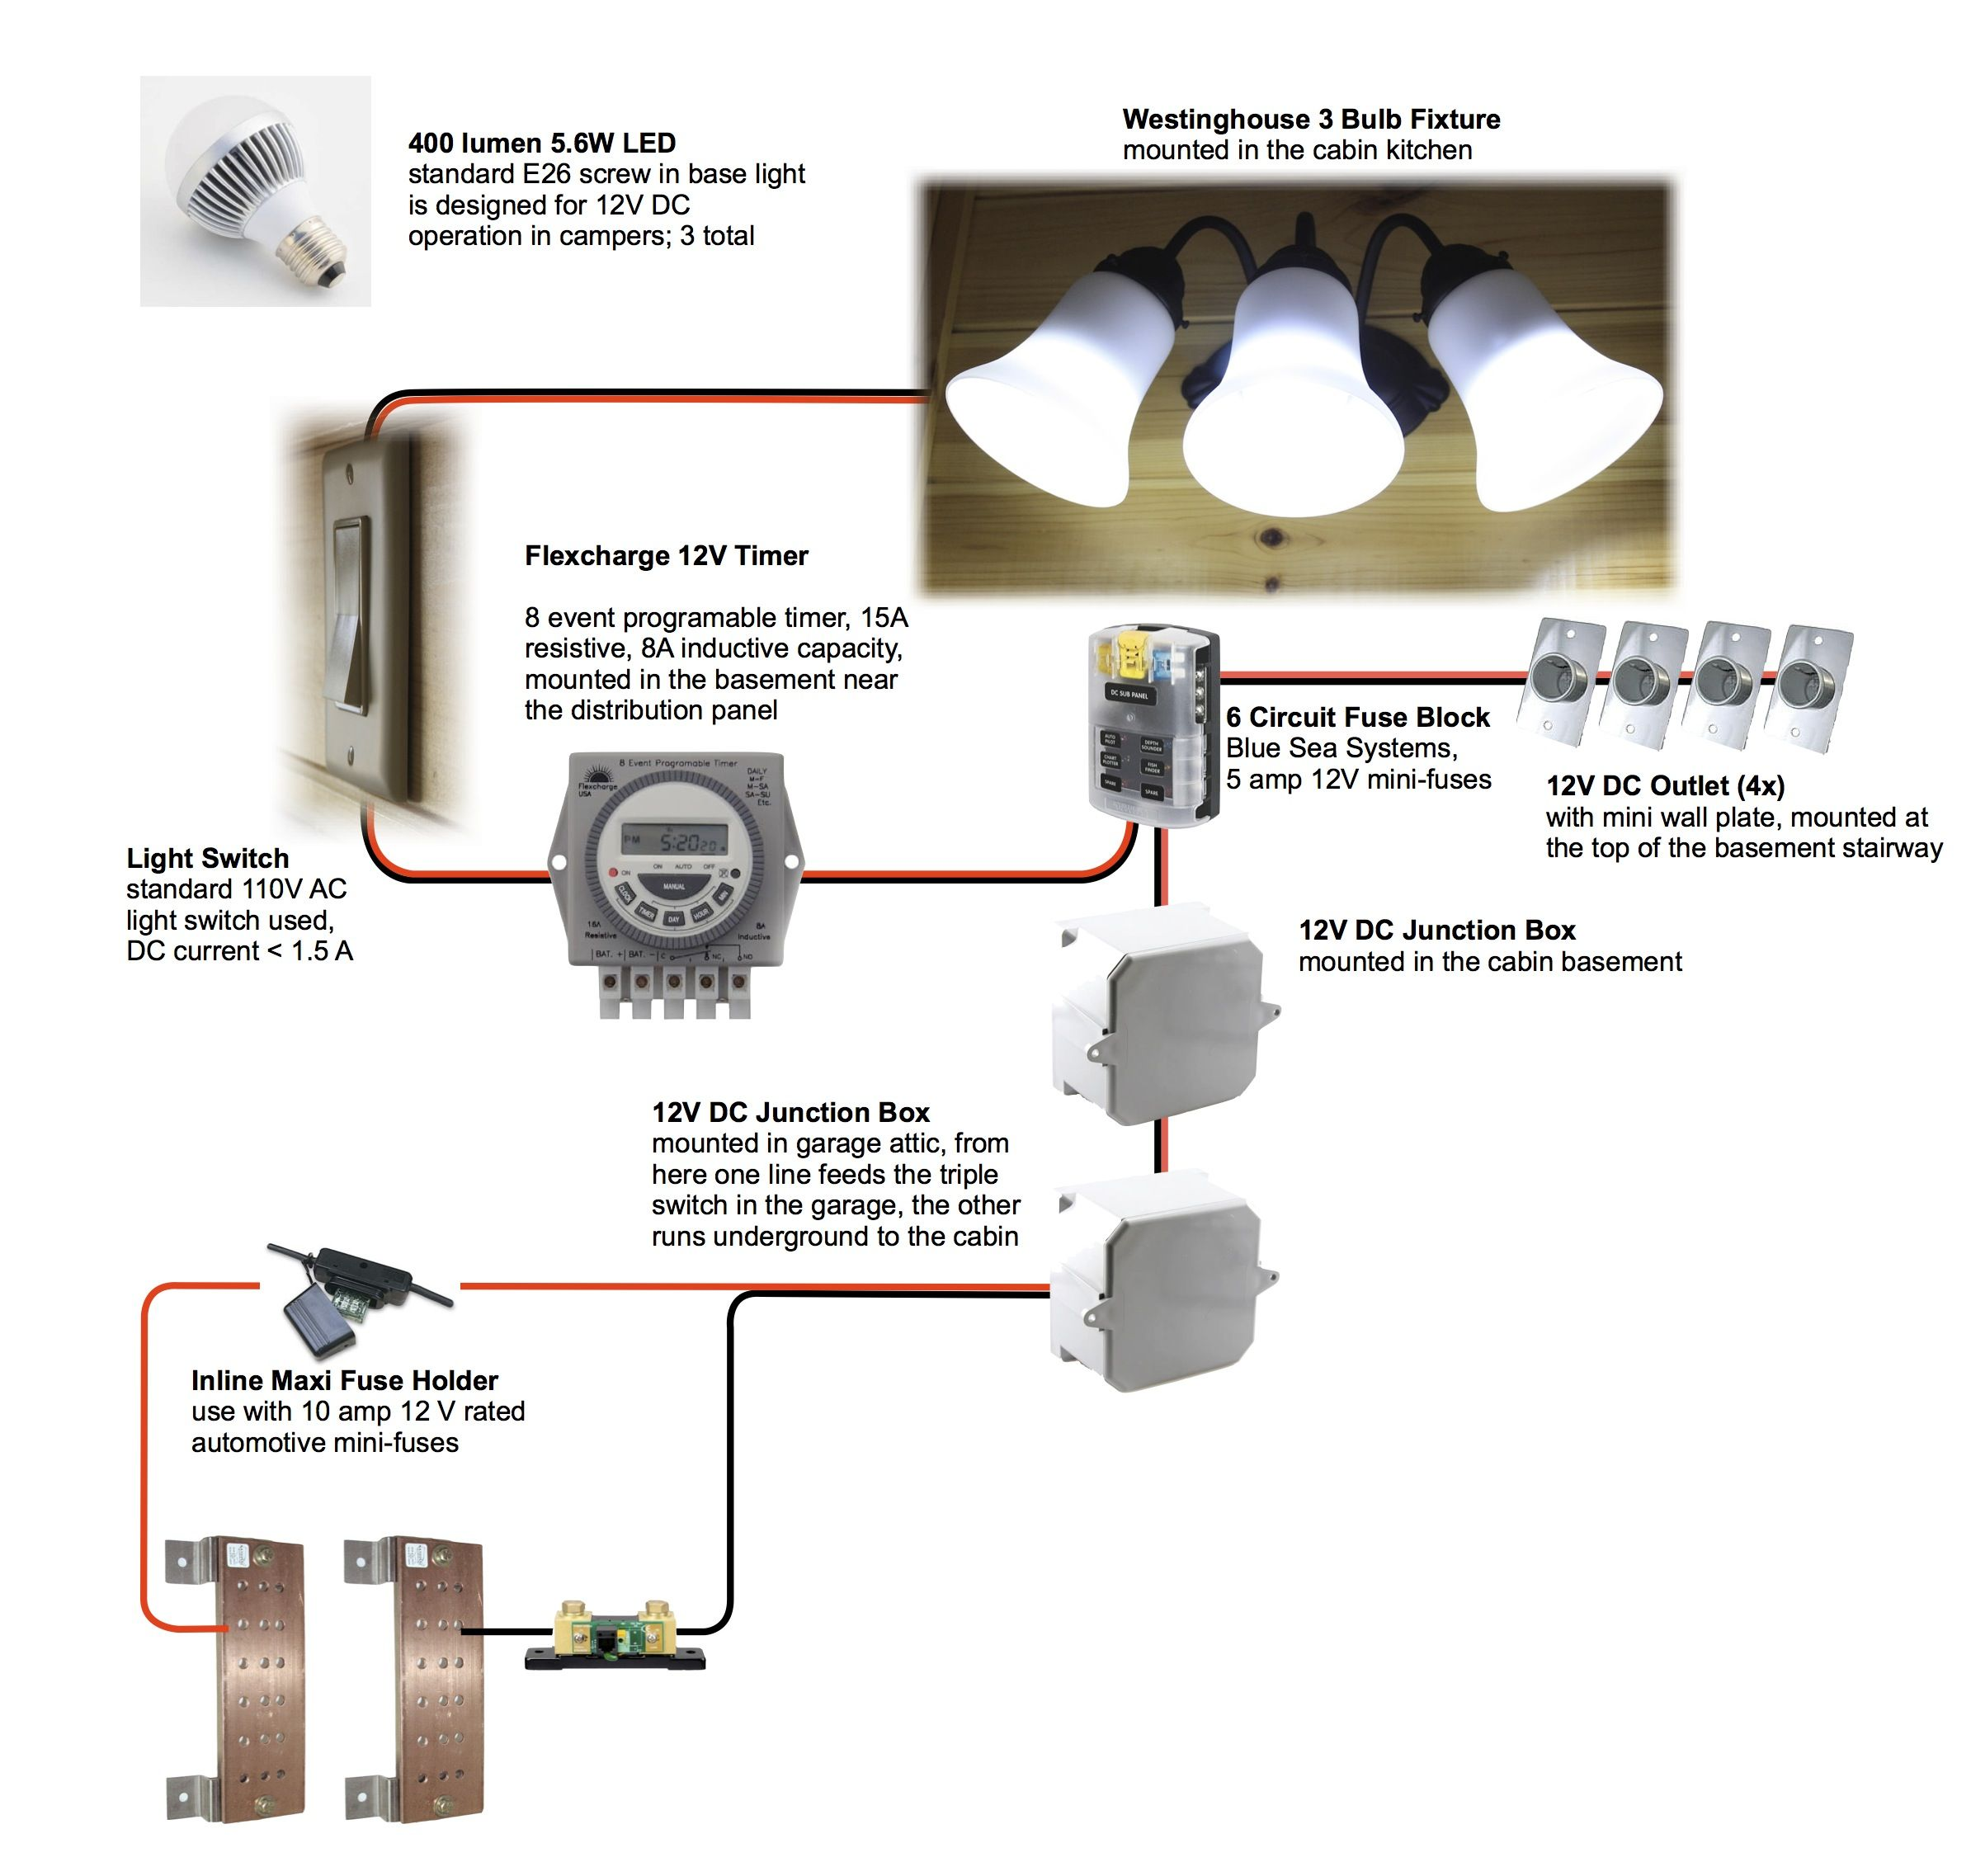 medium resolution of wiring dc lights easy wiring diagrams fan switch light wiring diagram light switch wiring dc